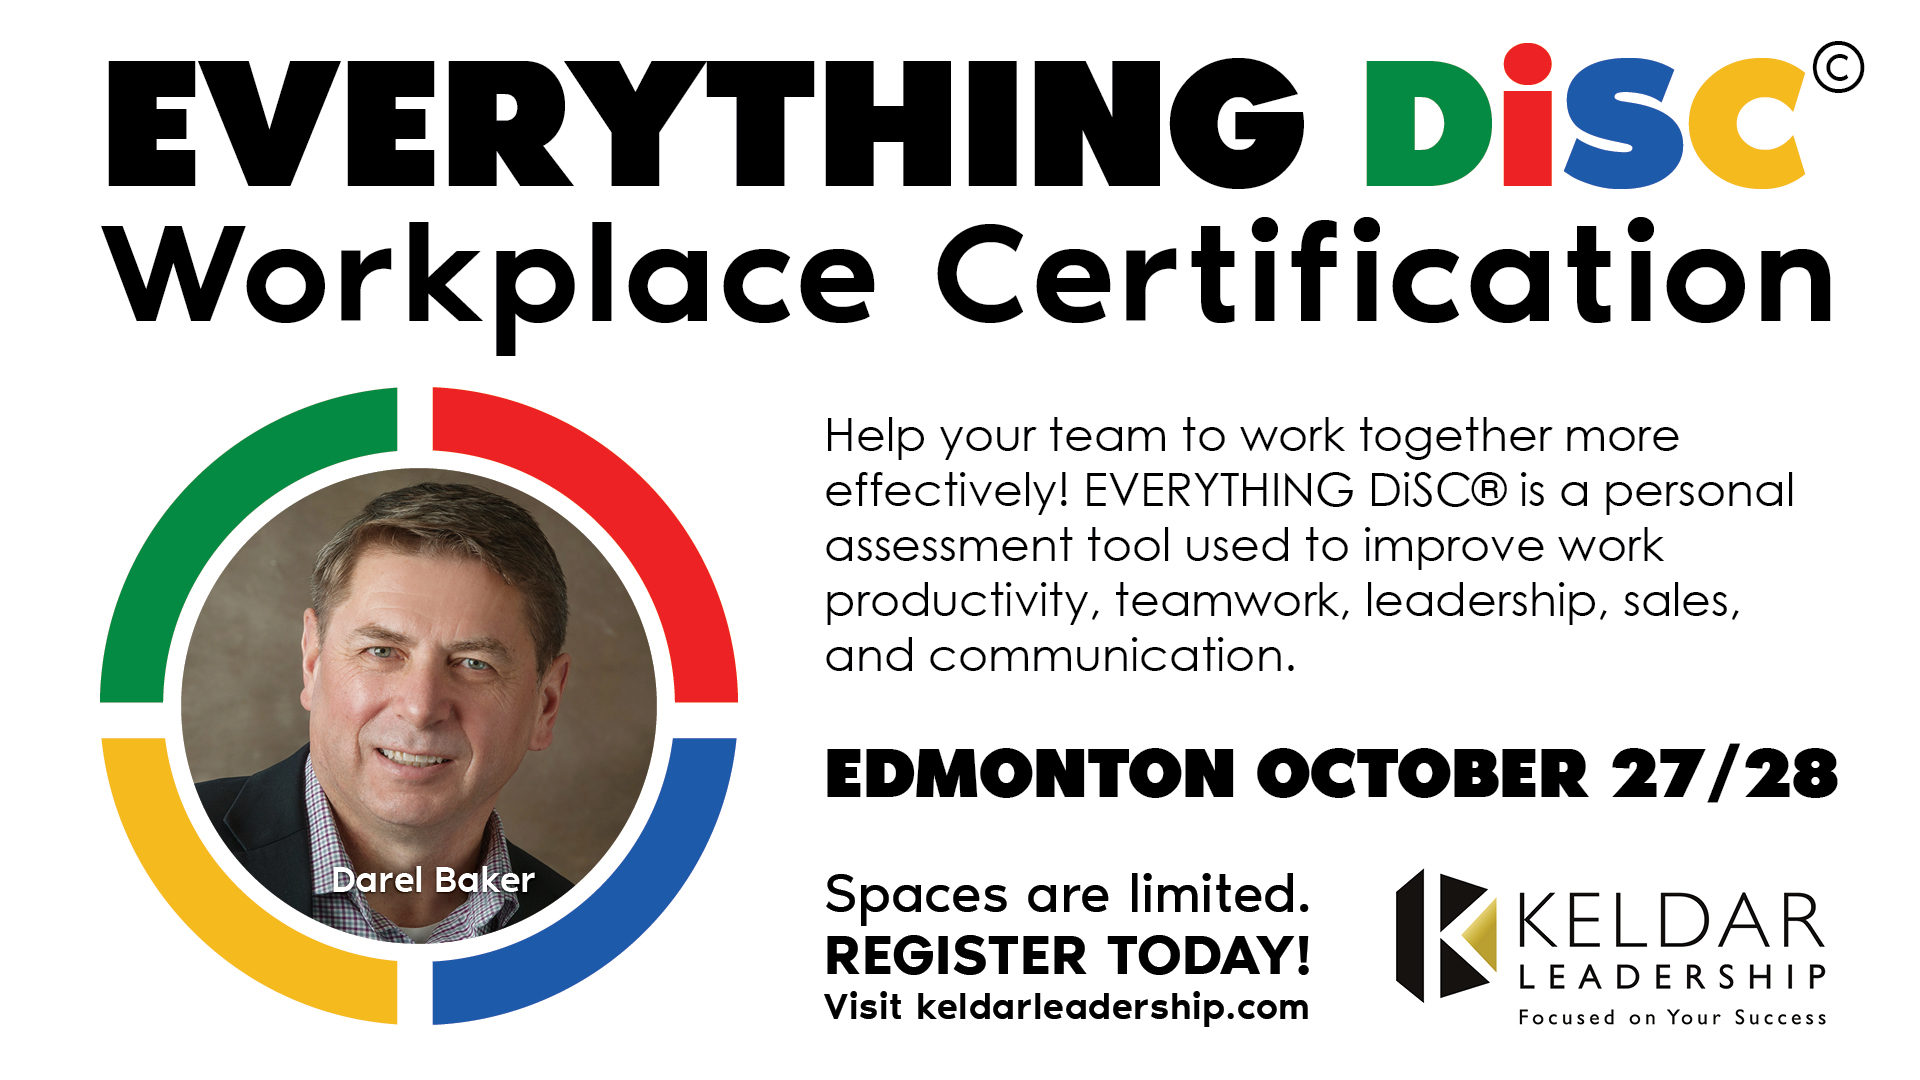 disc everything certification workplace certifcation workshop info